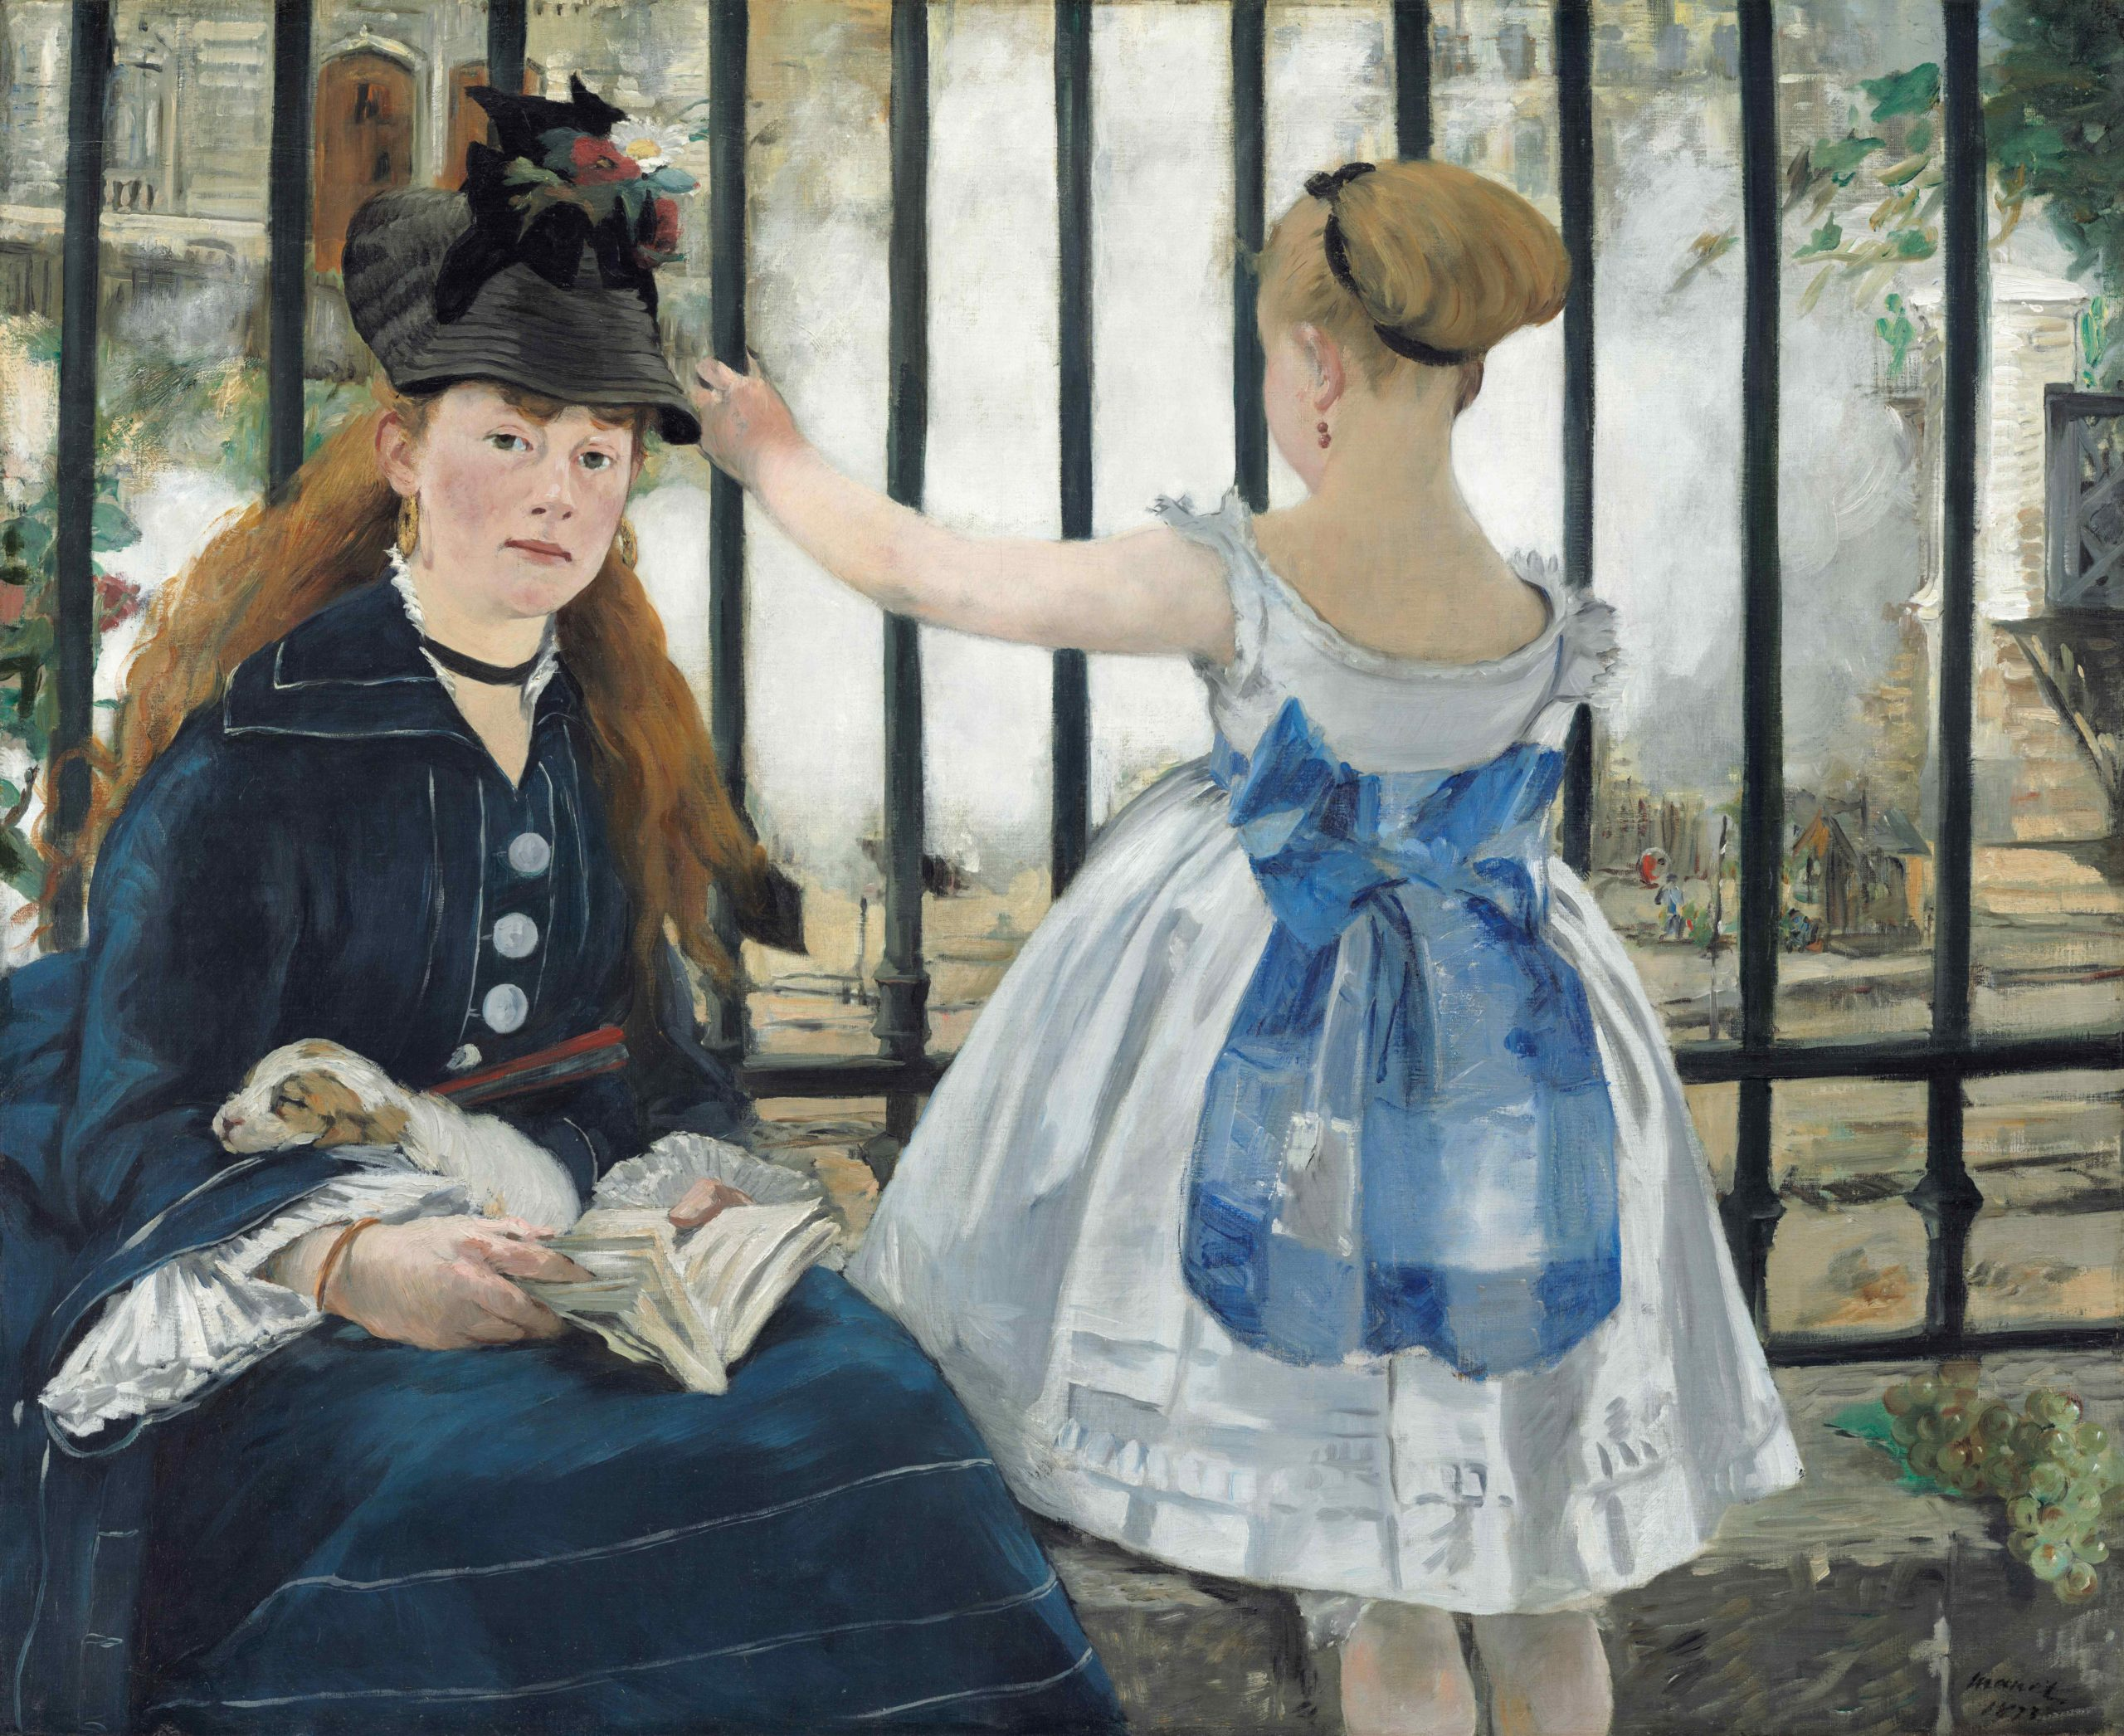 Exhibition – Manet: Portraying Life